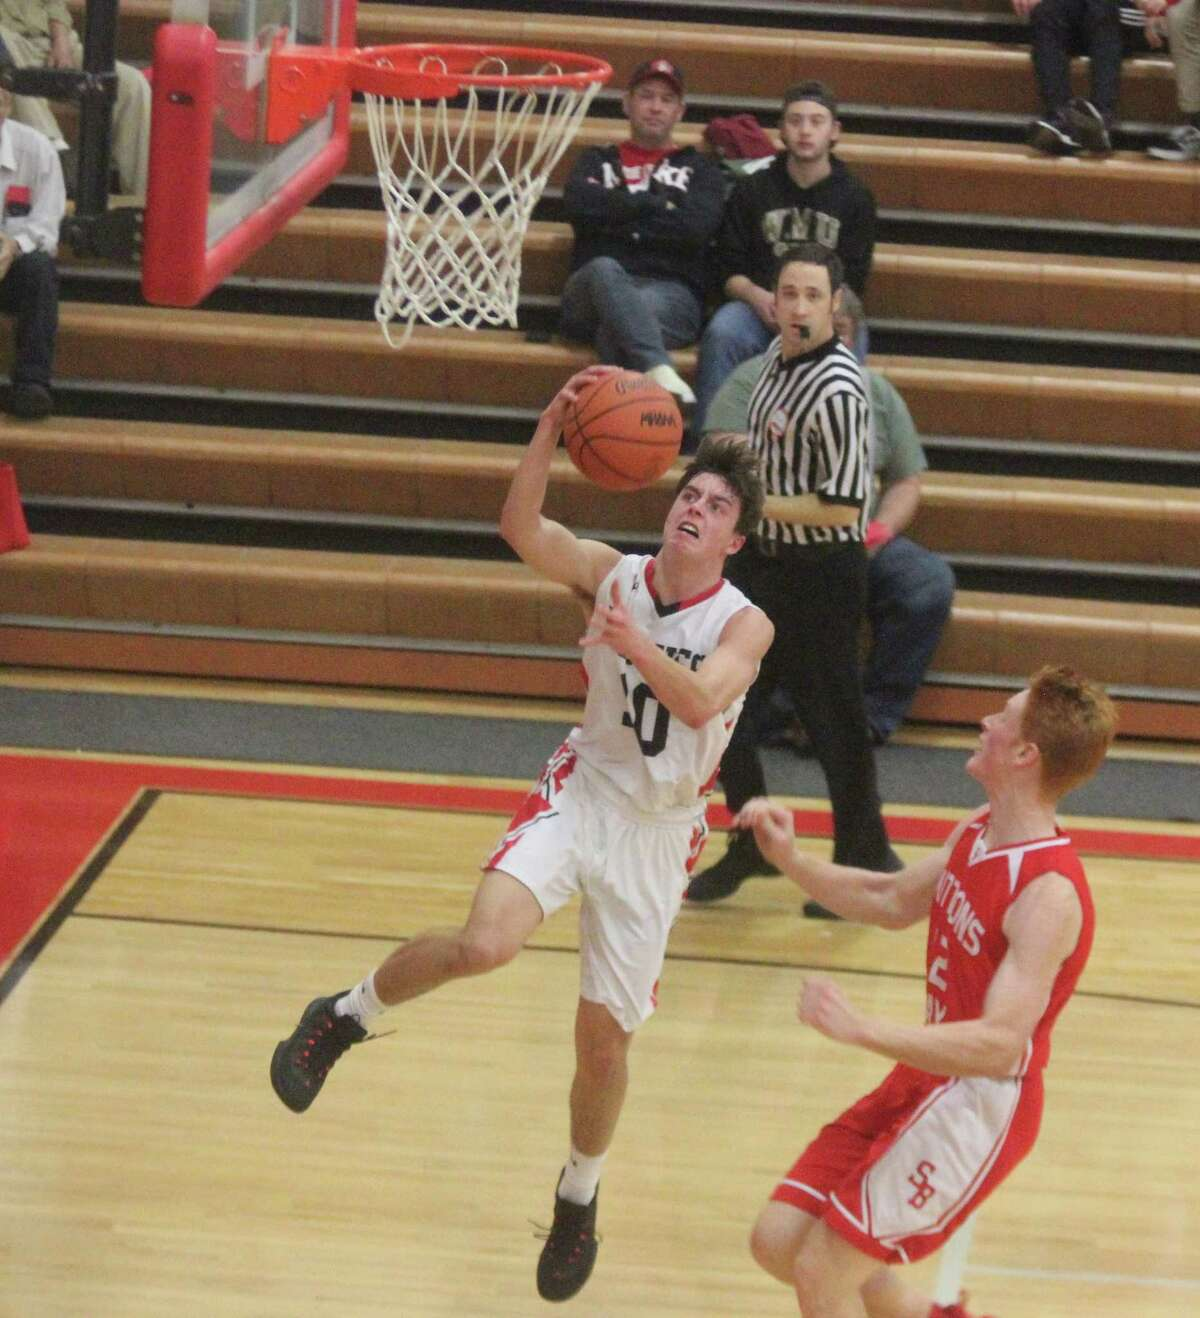 Ryan Kennedy gets past a defender for a transition layup to lead Benzie Central to victory over Suttons Bay. (Photo/Robert Myers)